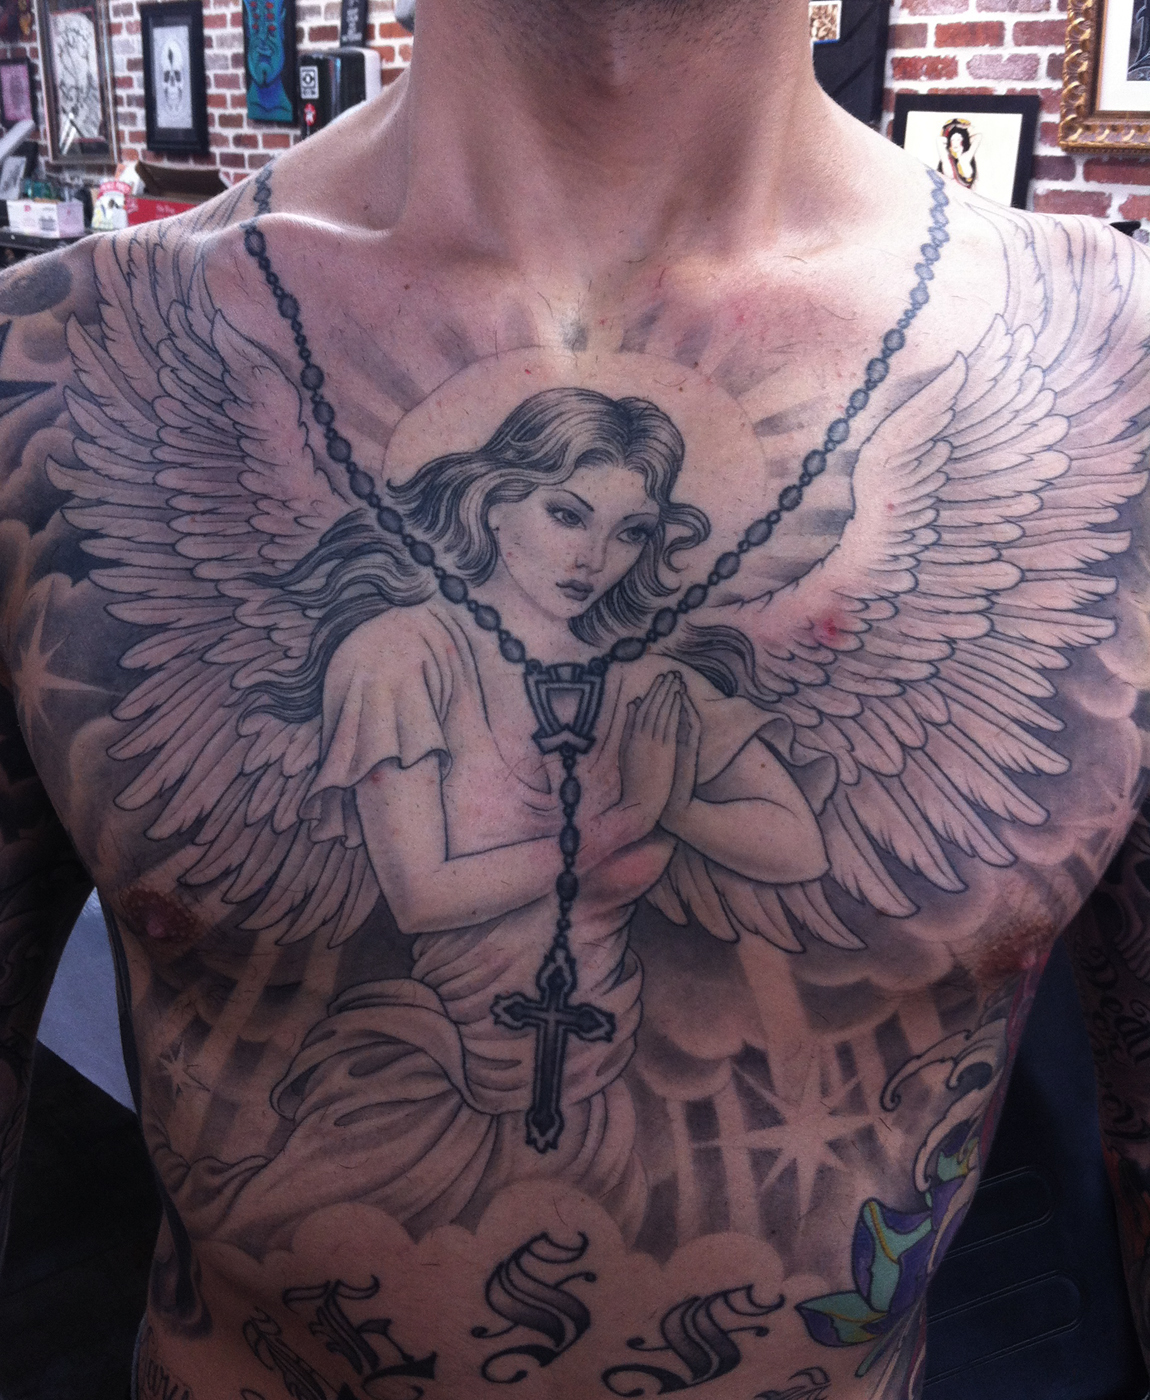 Chest Quote Tattoos Designs Ideas And Meaning: Religious Tattoos Designs, Ideas And Meaning